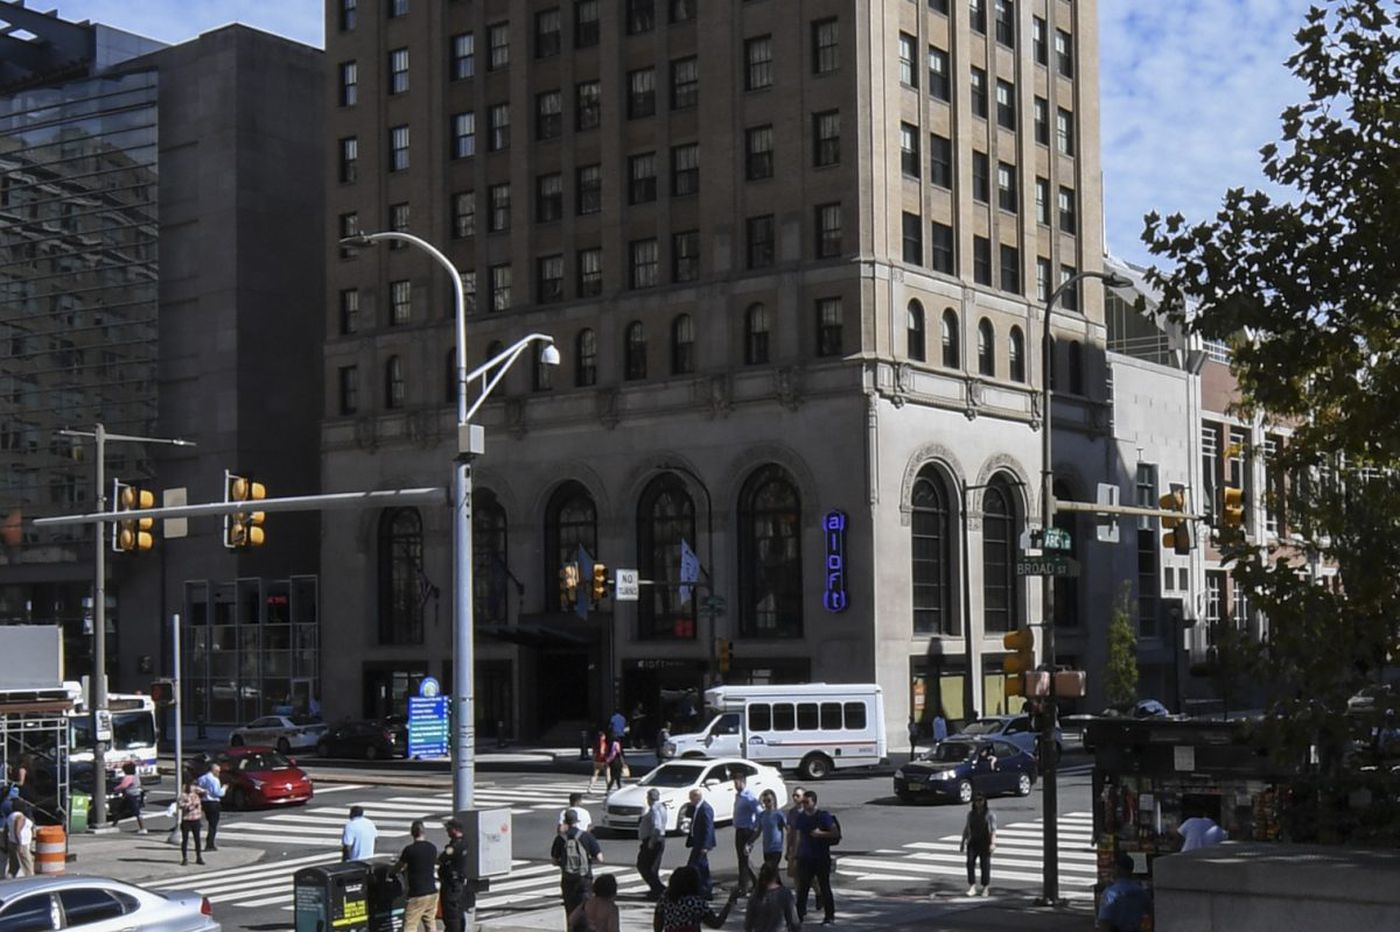 Philly union presses pension funds re: nonunion hotel (Updates)